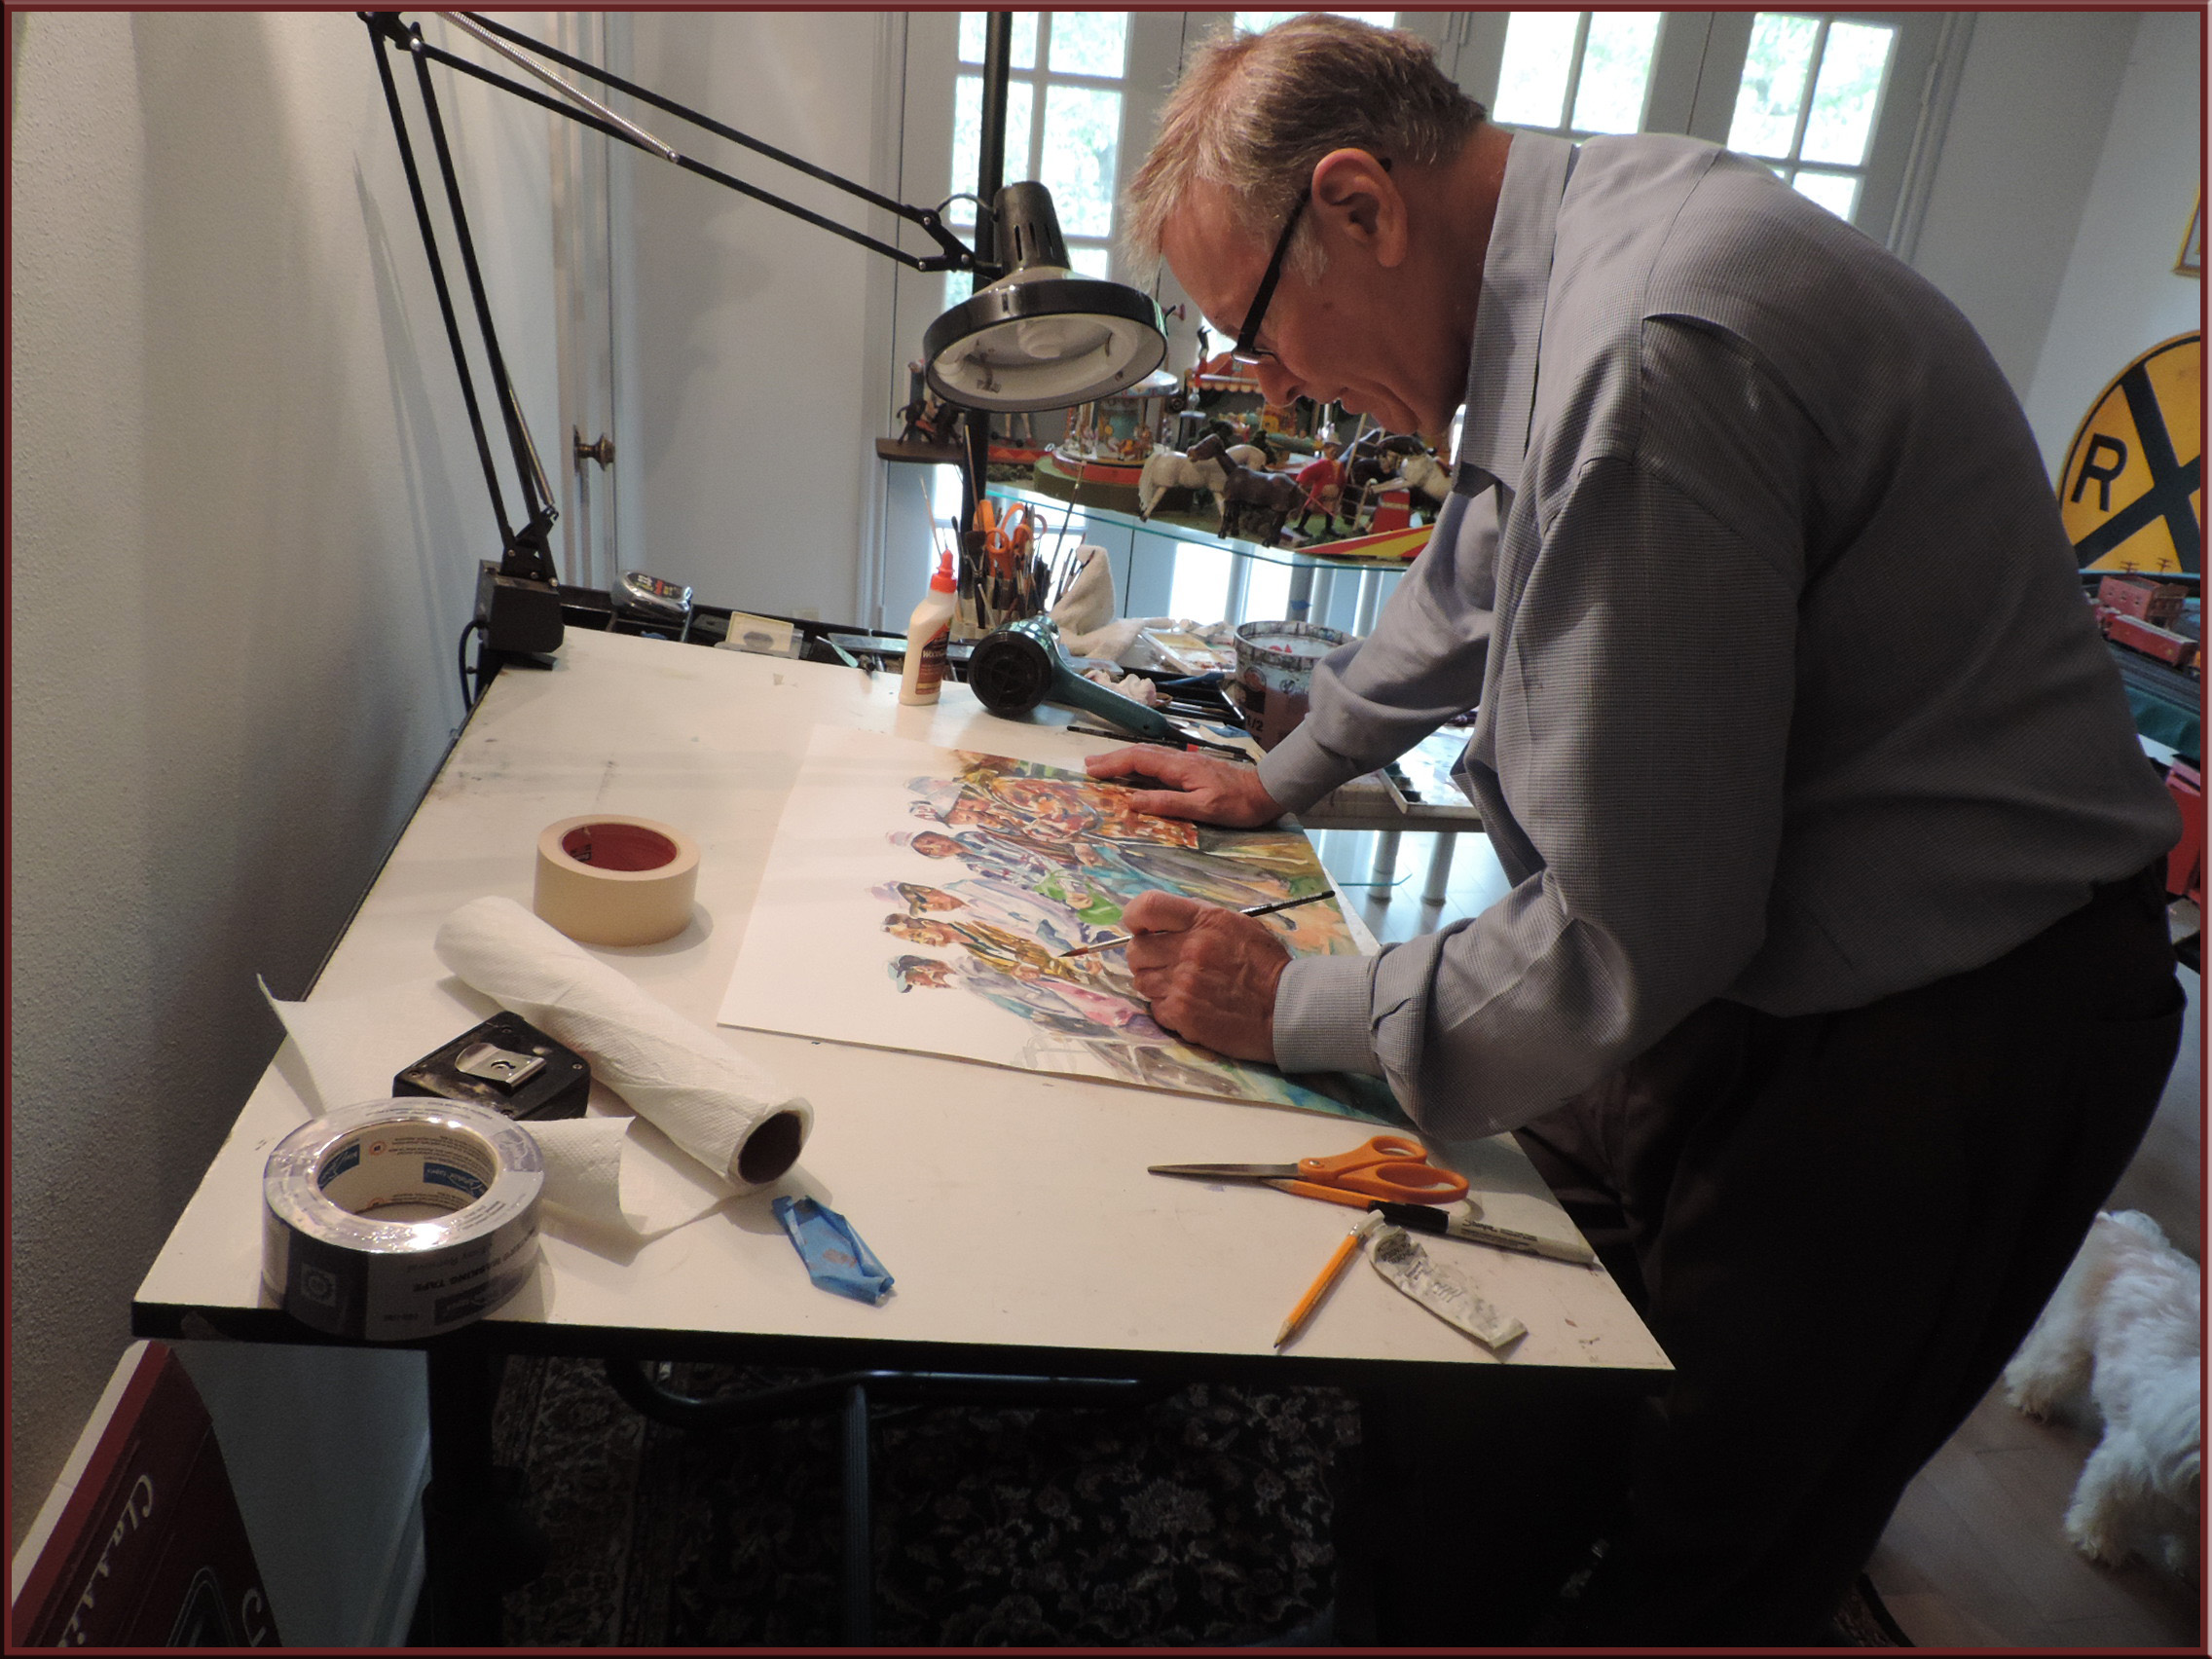 Watercolor art society of houston -  Houston Watercolor Society And Has Had Works Accepted For Their International Watercolor Show Larry Has Shown His Work In One Man Art Shows Throughout